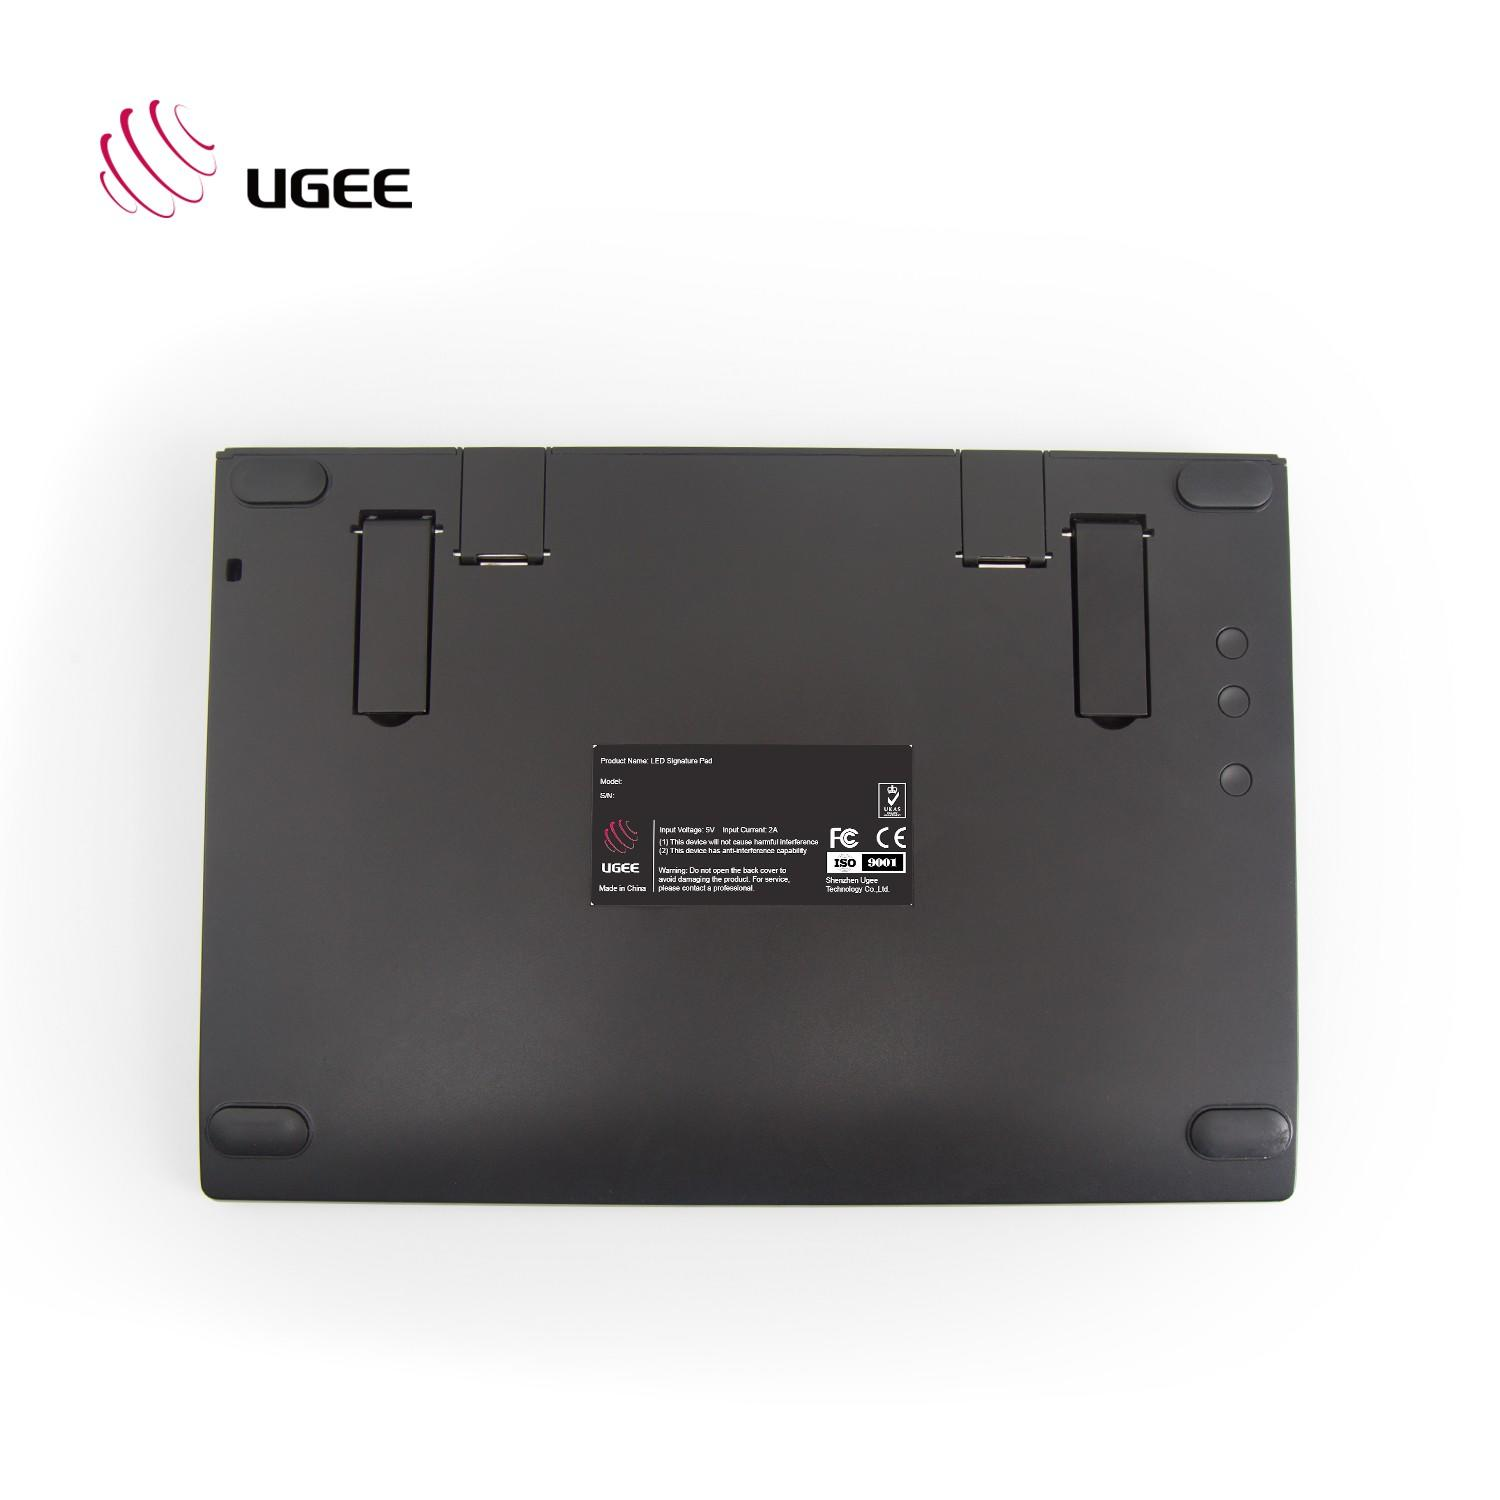 Ugee-Find Pen Best Tablet For Writing Hot Sale Ugee Company | Manufacture-1